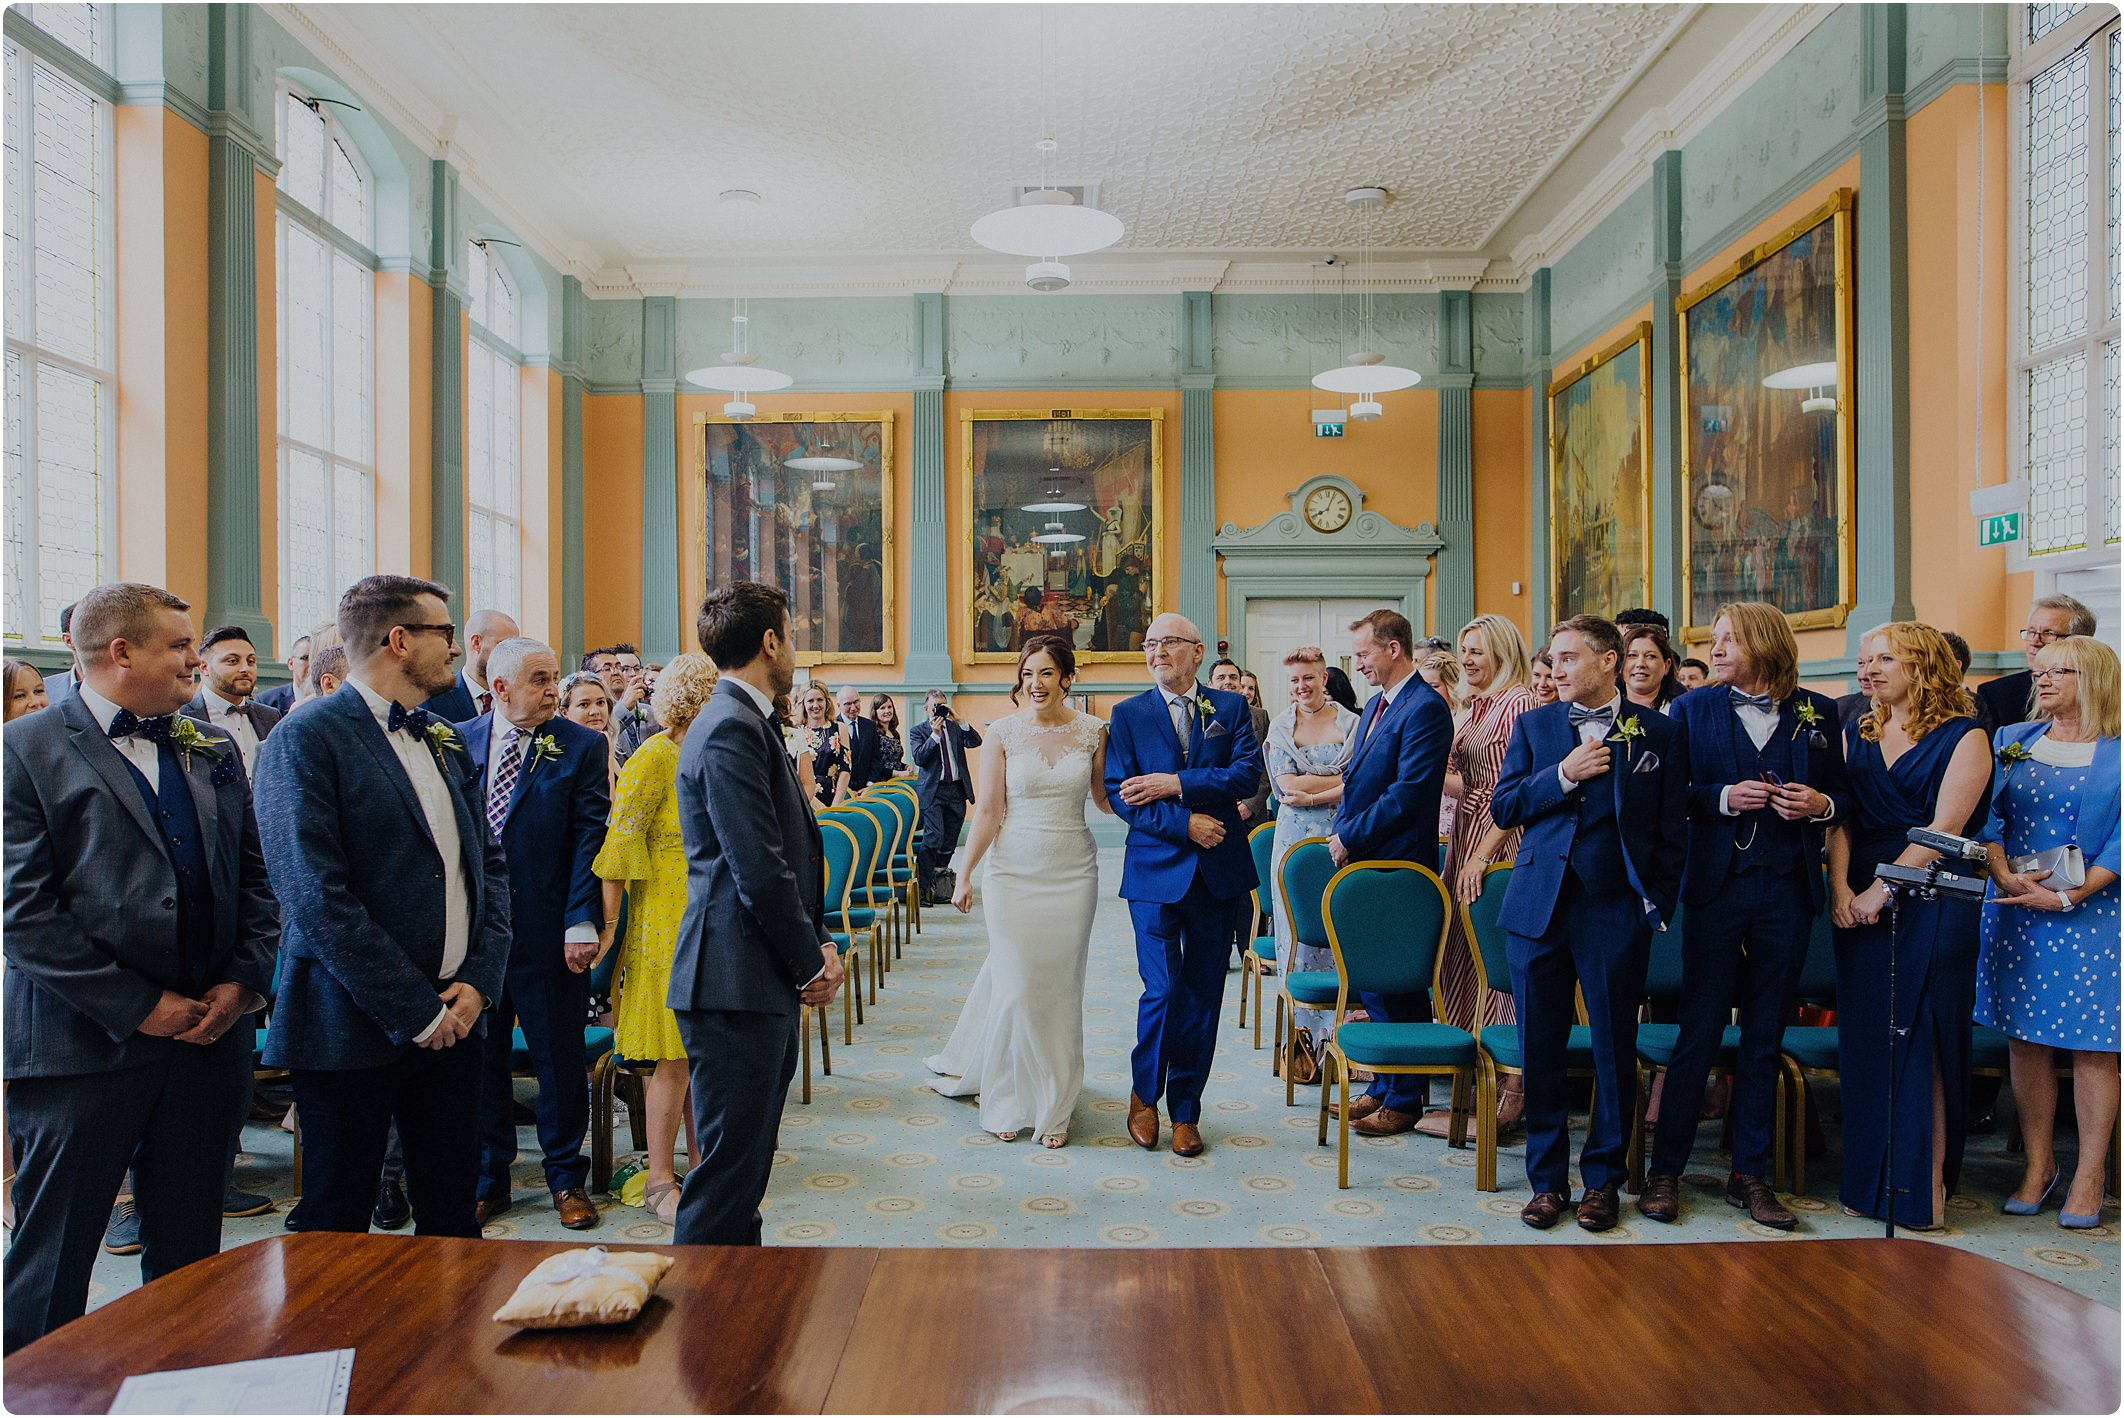 walking down the aisle at City Hall Bristol